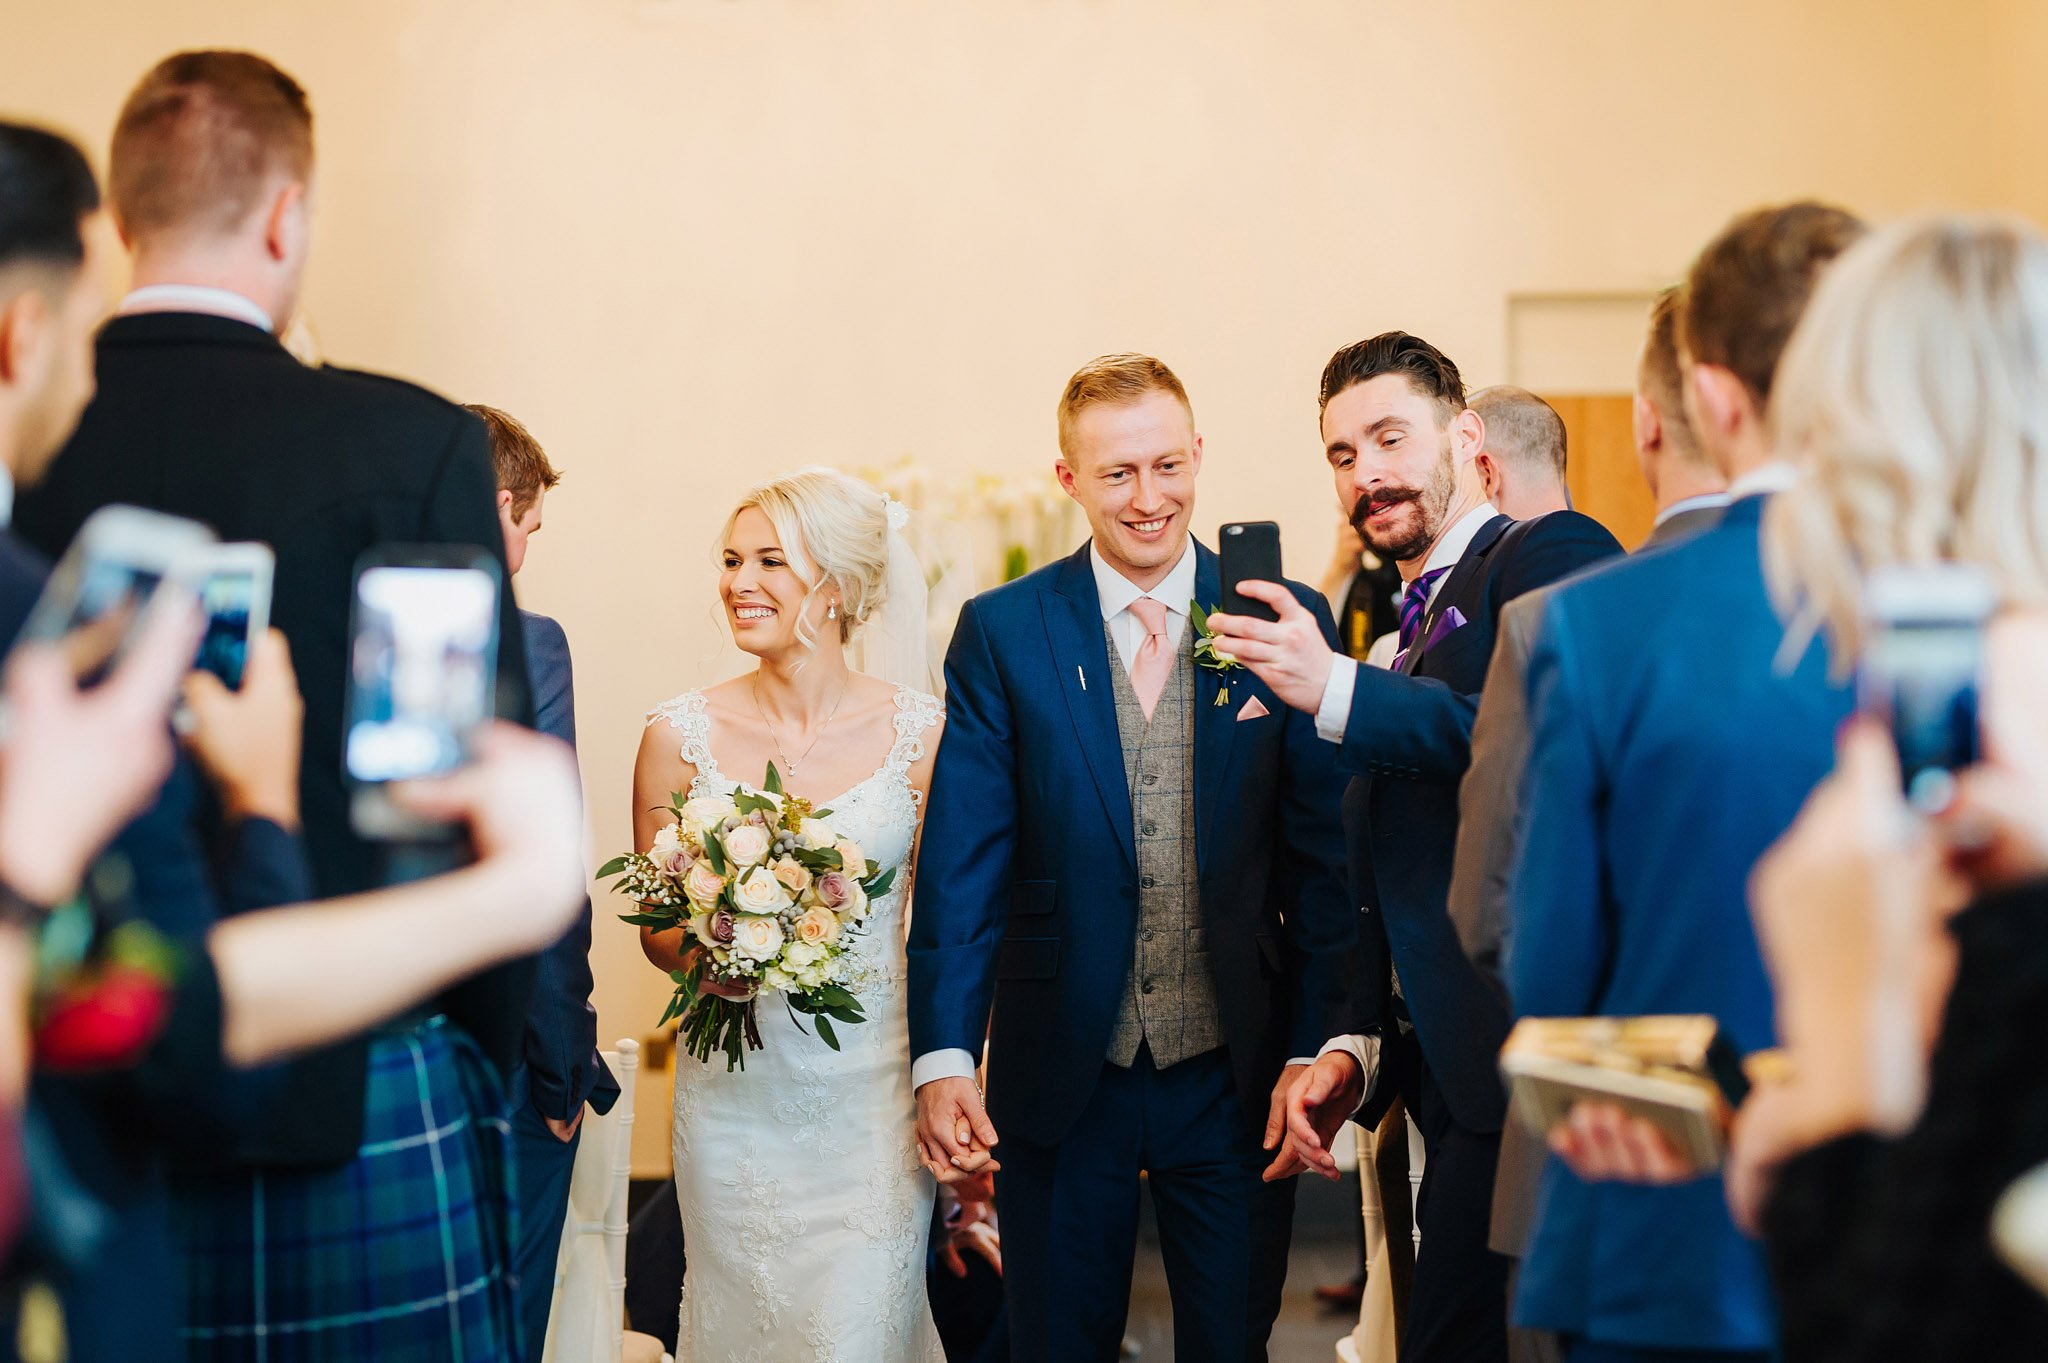 lemore manor wedding herefordshire 46 - Lemore Manor wedding, Herefordshire - West Midlands | Sadie + Ken